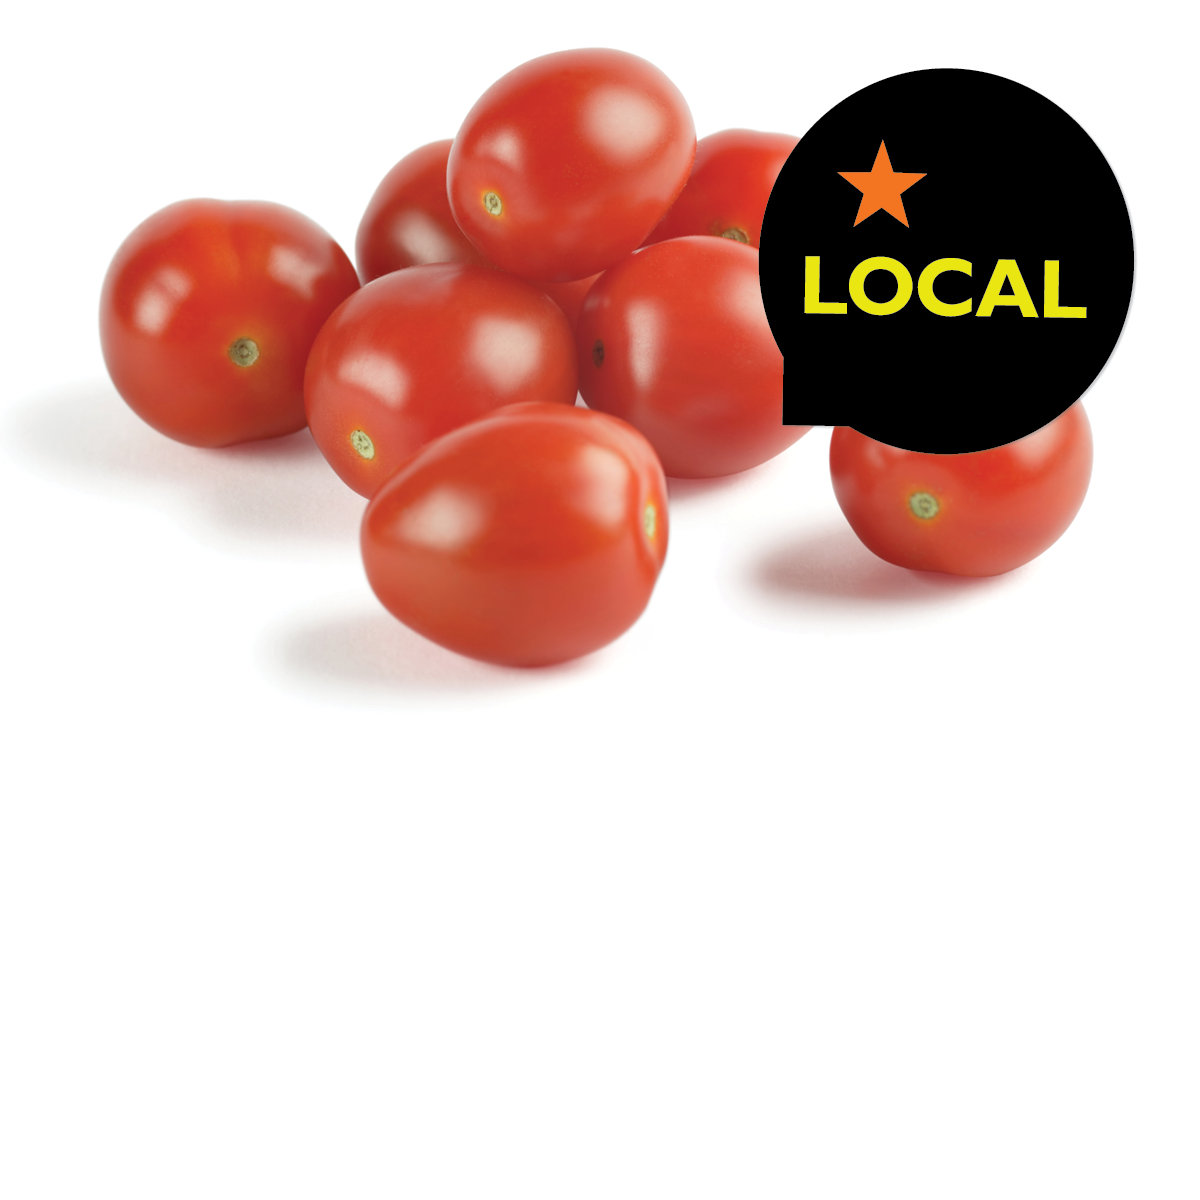 ORGANIC LOCAL Cherry or Grape Tomatoes